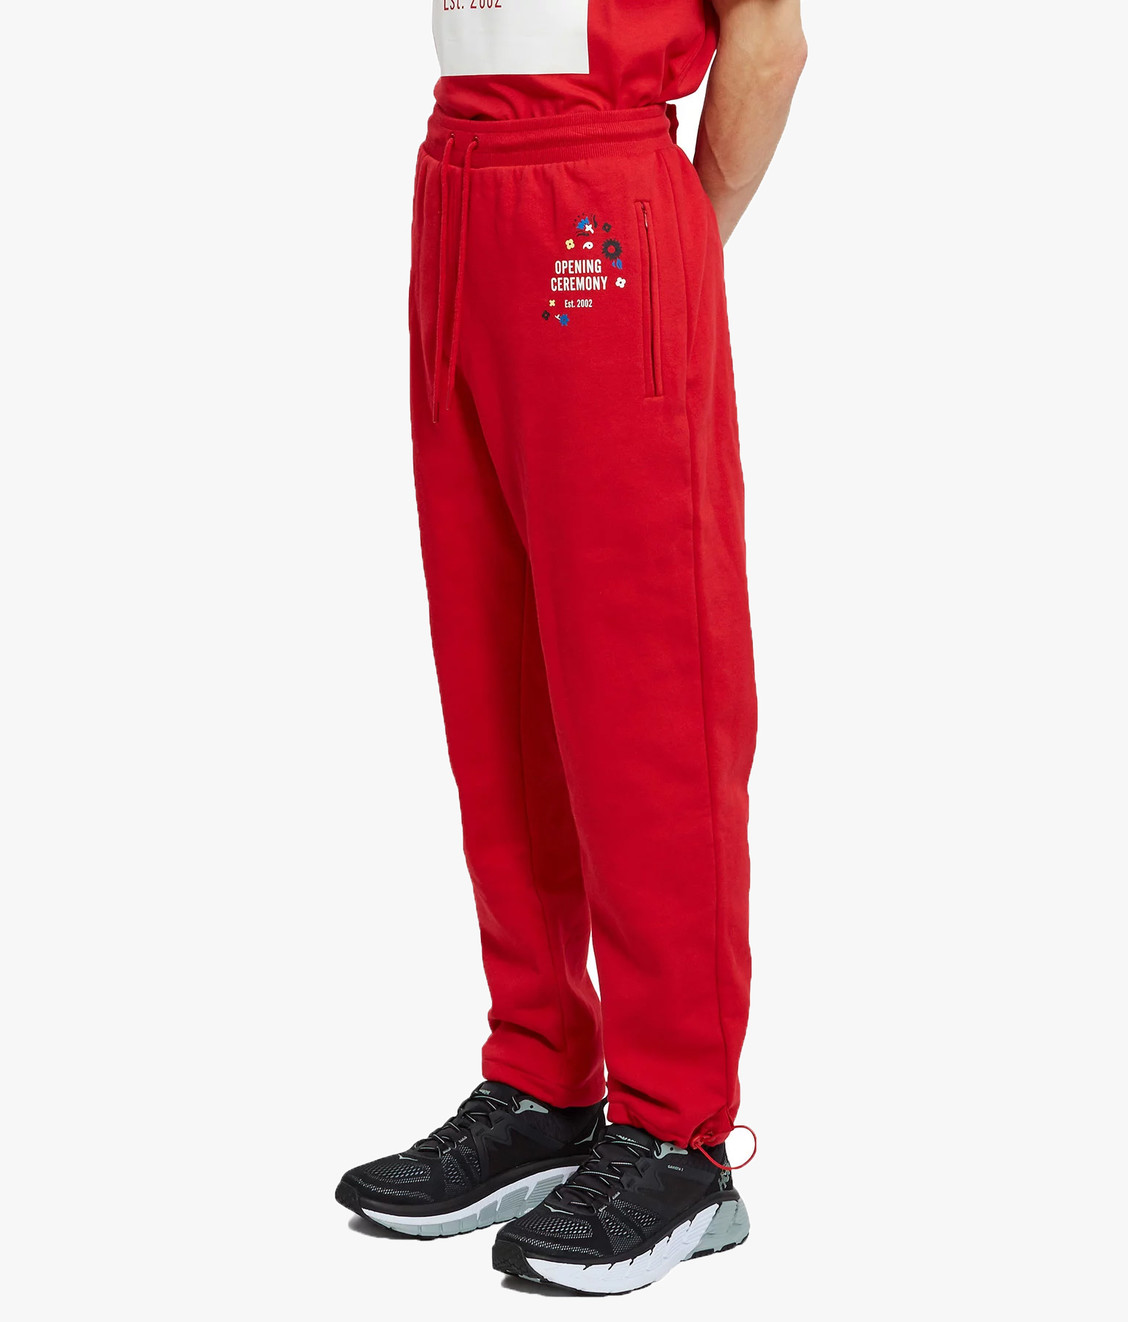 Opening Ceremony Opening Ceremony Sweatpant Red